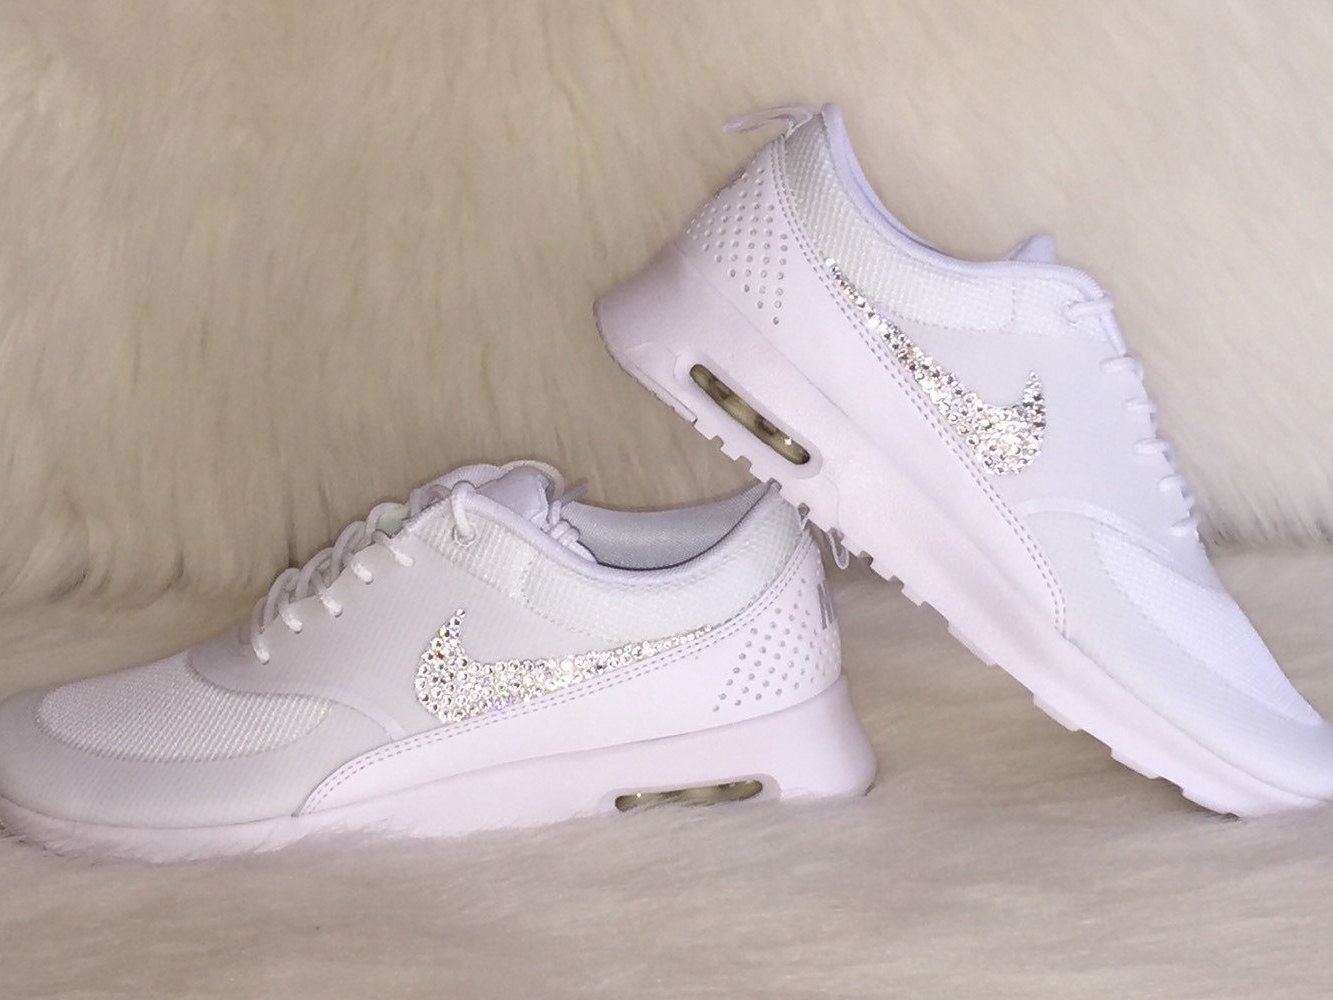 NEW just IN HOT Sale Women's Nike Air Max Thea Running Shoes white on white  Bling shoes swarovski crystals wedding dance shoes gorgeous